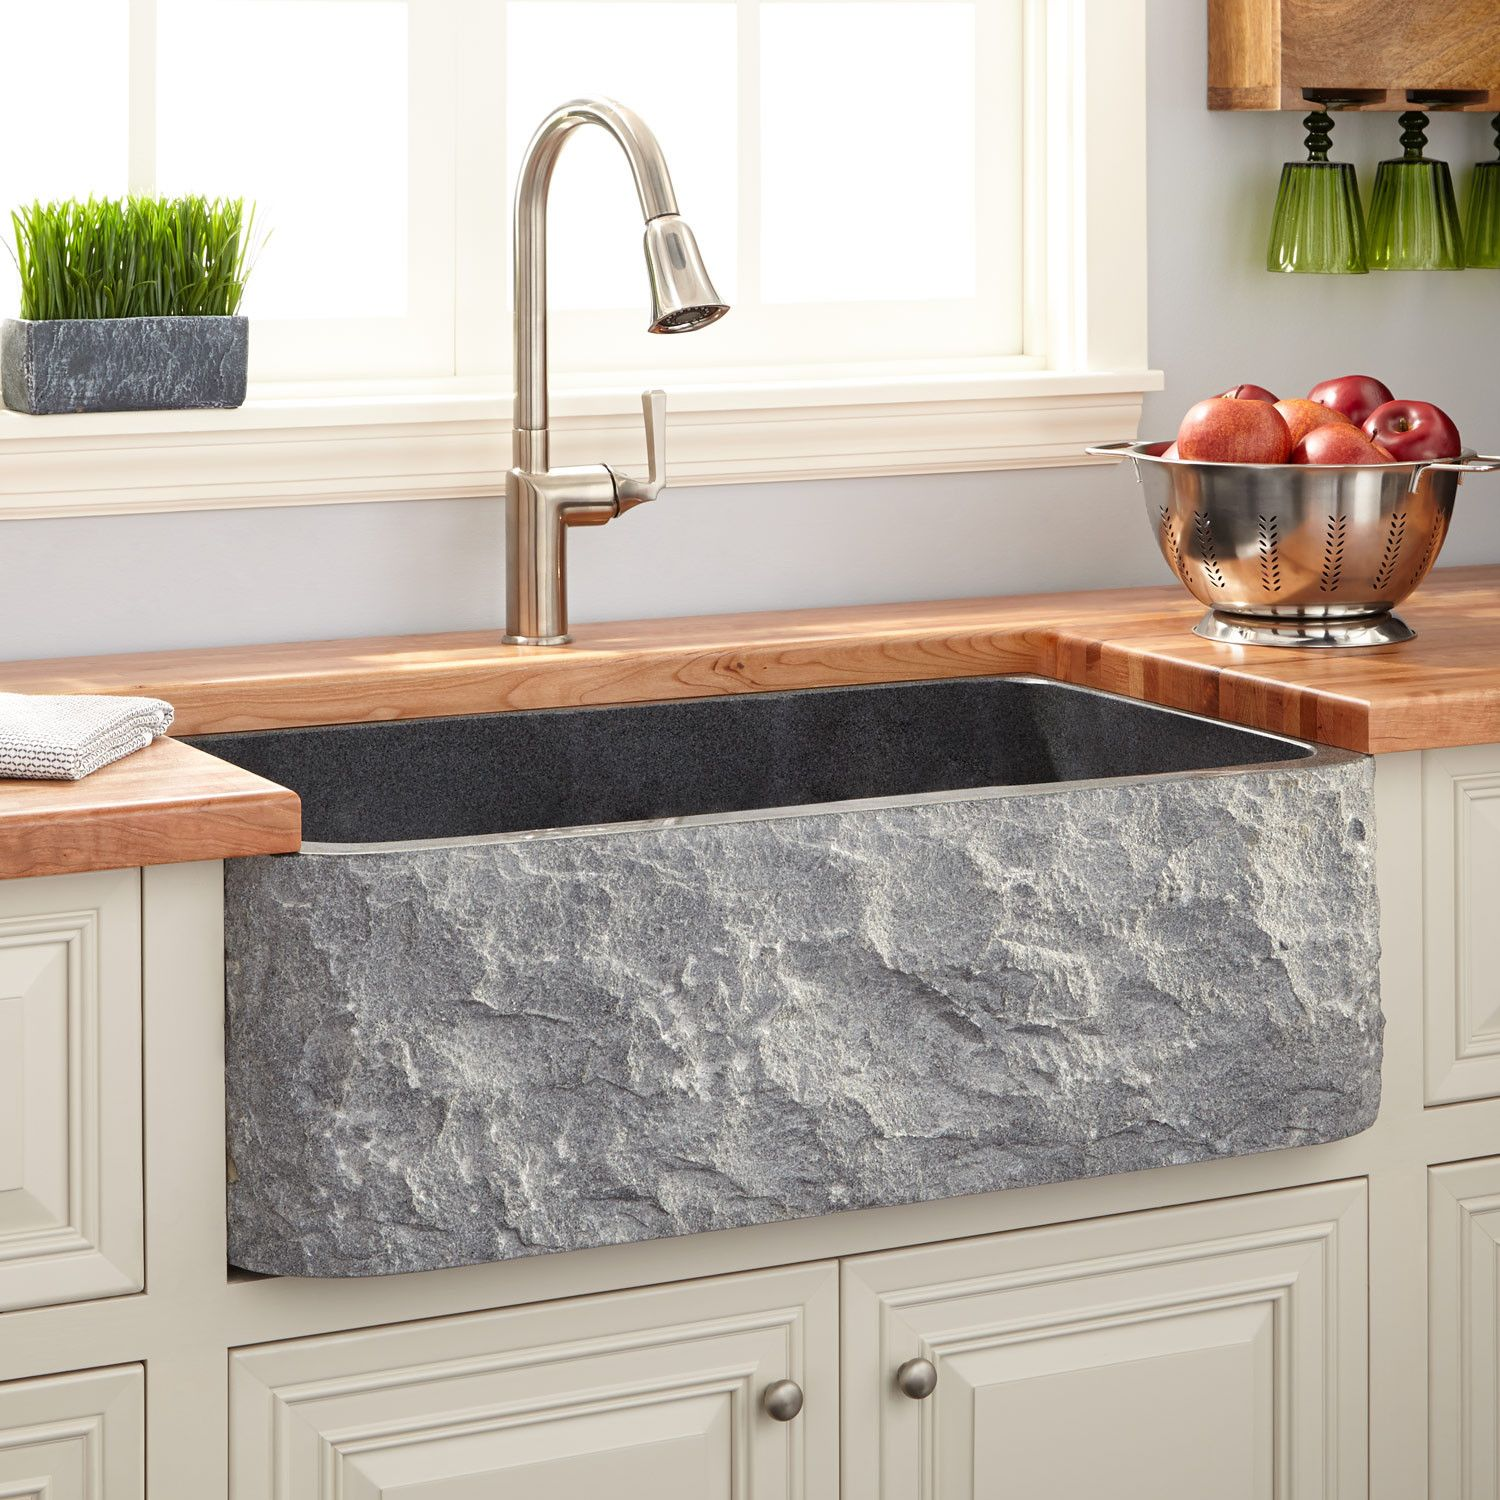 33 Polished Granite Farmhouse Sink Chiseled Apron